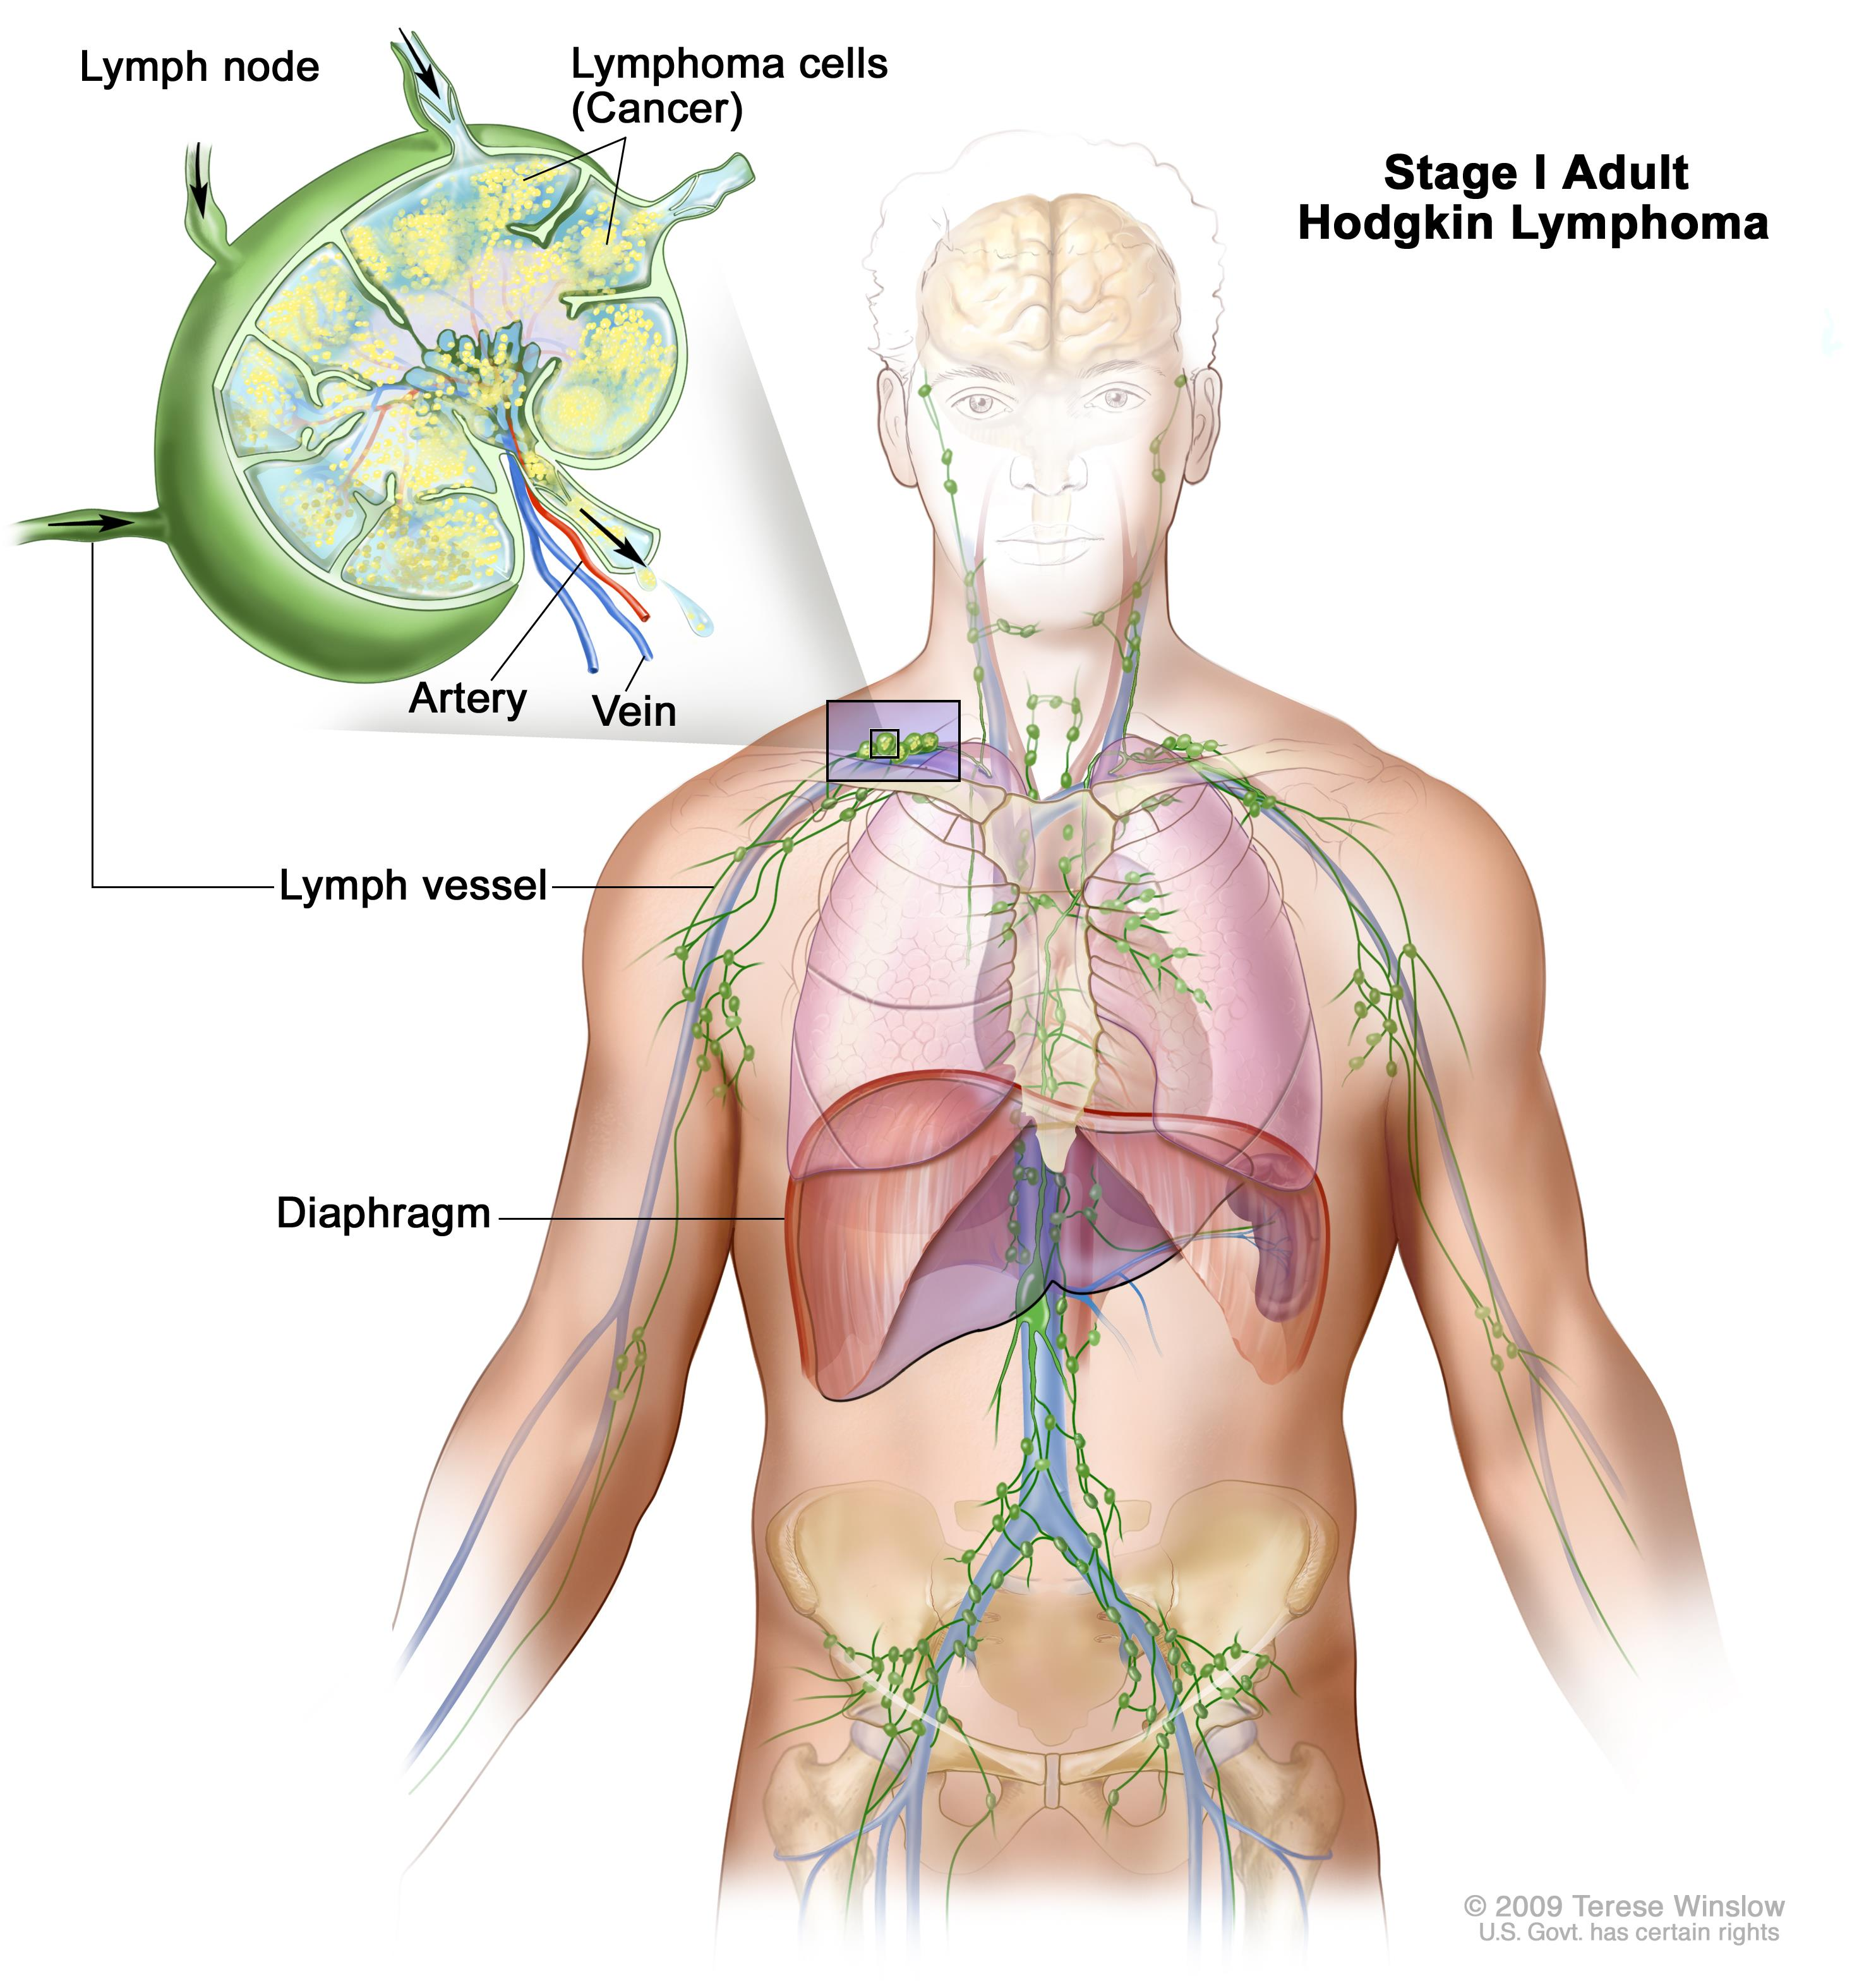 Stage I adult Hodgkin lymphoma; drawing shows cancer in one lymph node group above the diaphragm. An inset shows a lymph node with a lymph vessel, an artery, and a vein. Lymphoma cells containing cancer are shown in the lymph node.